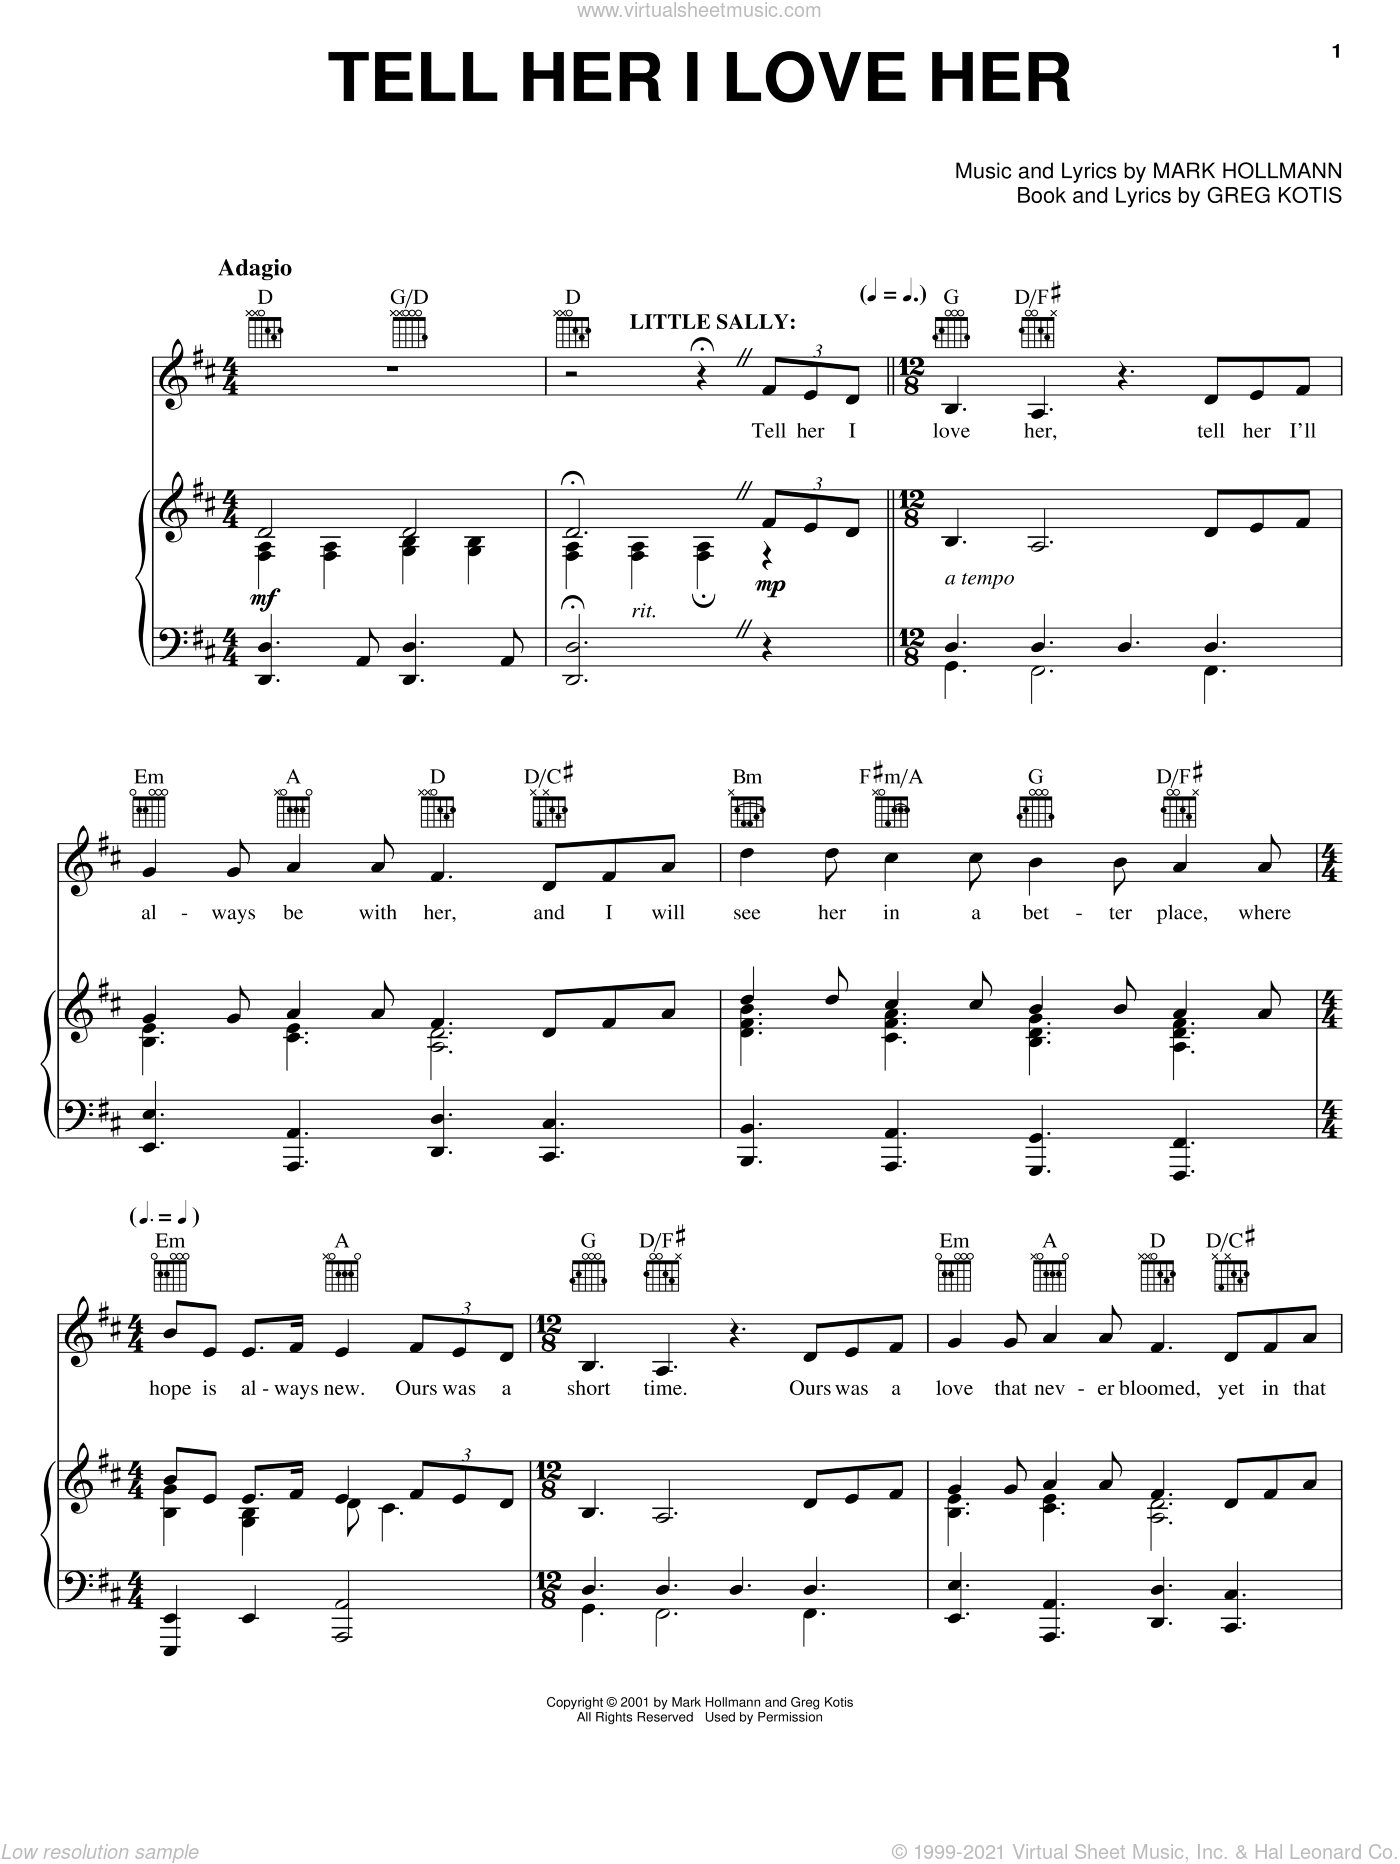 Tell Her I Love Her sheet music for voice, piano or guitar by Urinetown (Musical), Greg Kotis and Mark Hollmann, intermediate skill level